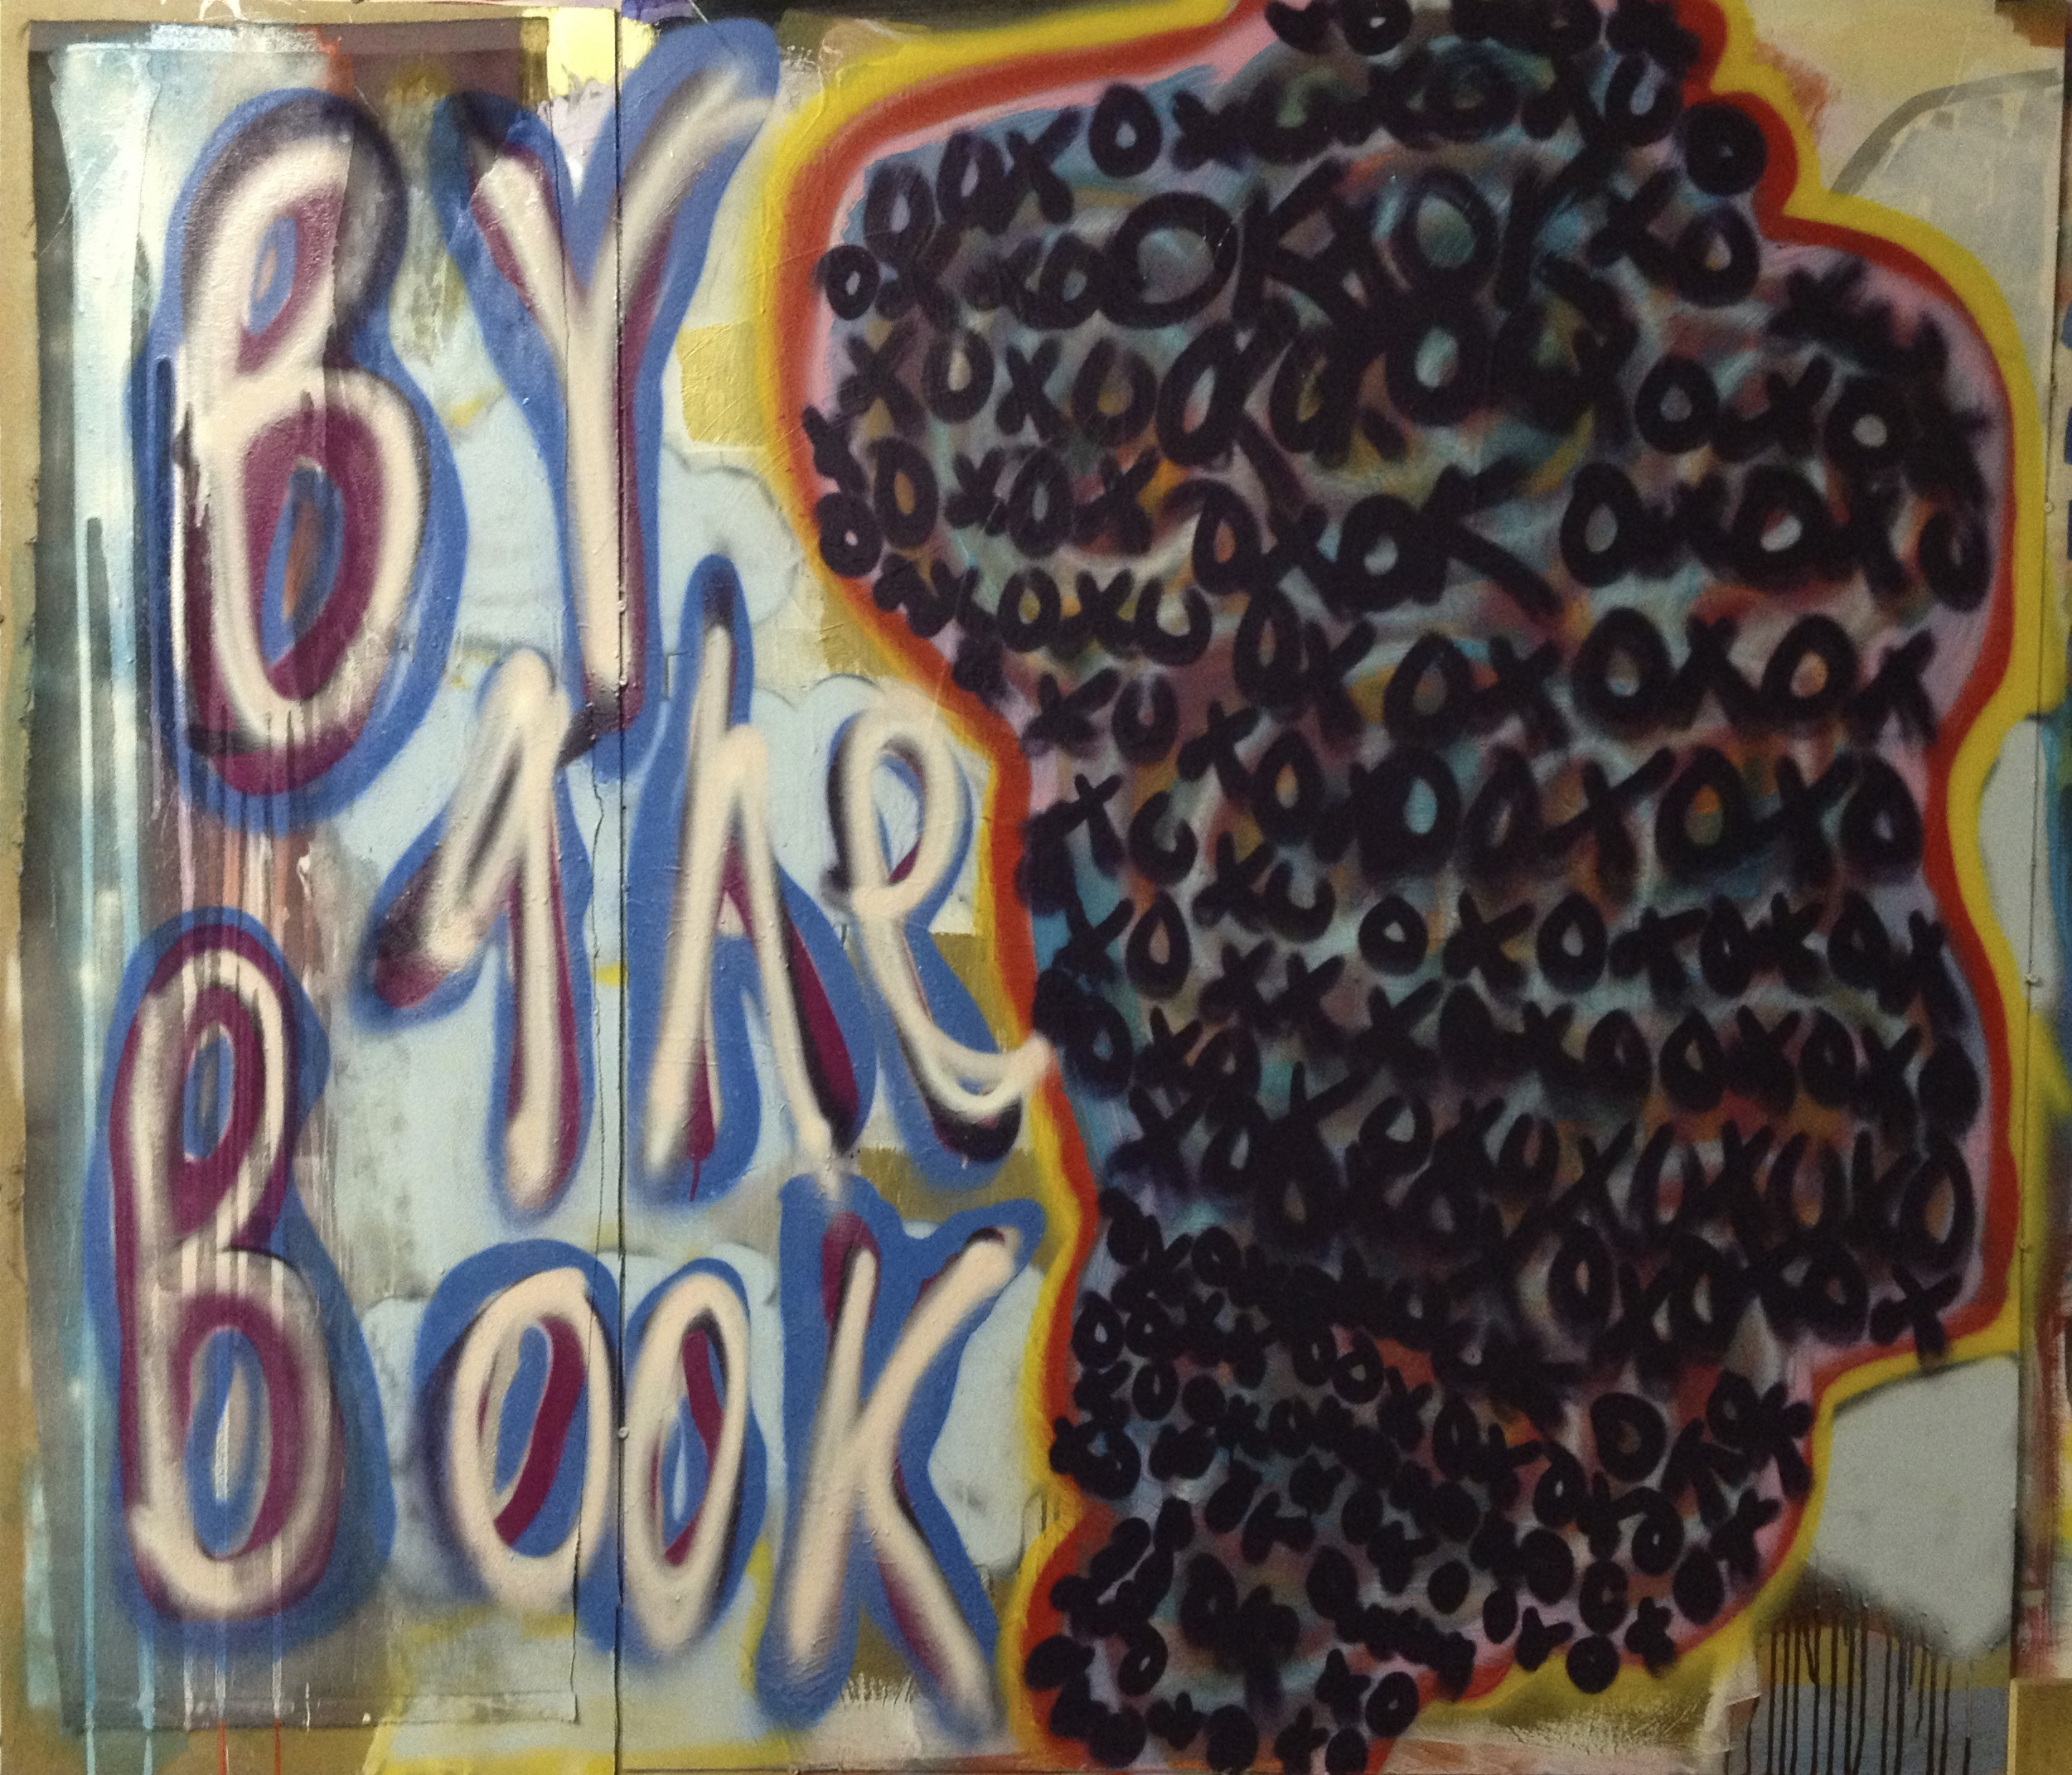 """By The Book, 68 3/4"""" x 60 3/4"""", Acrylic, Marker, Fabric. on Board"""